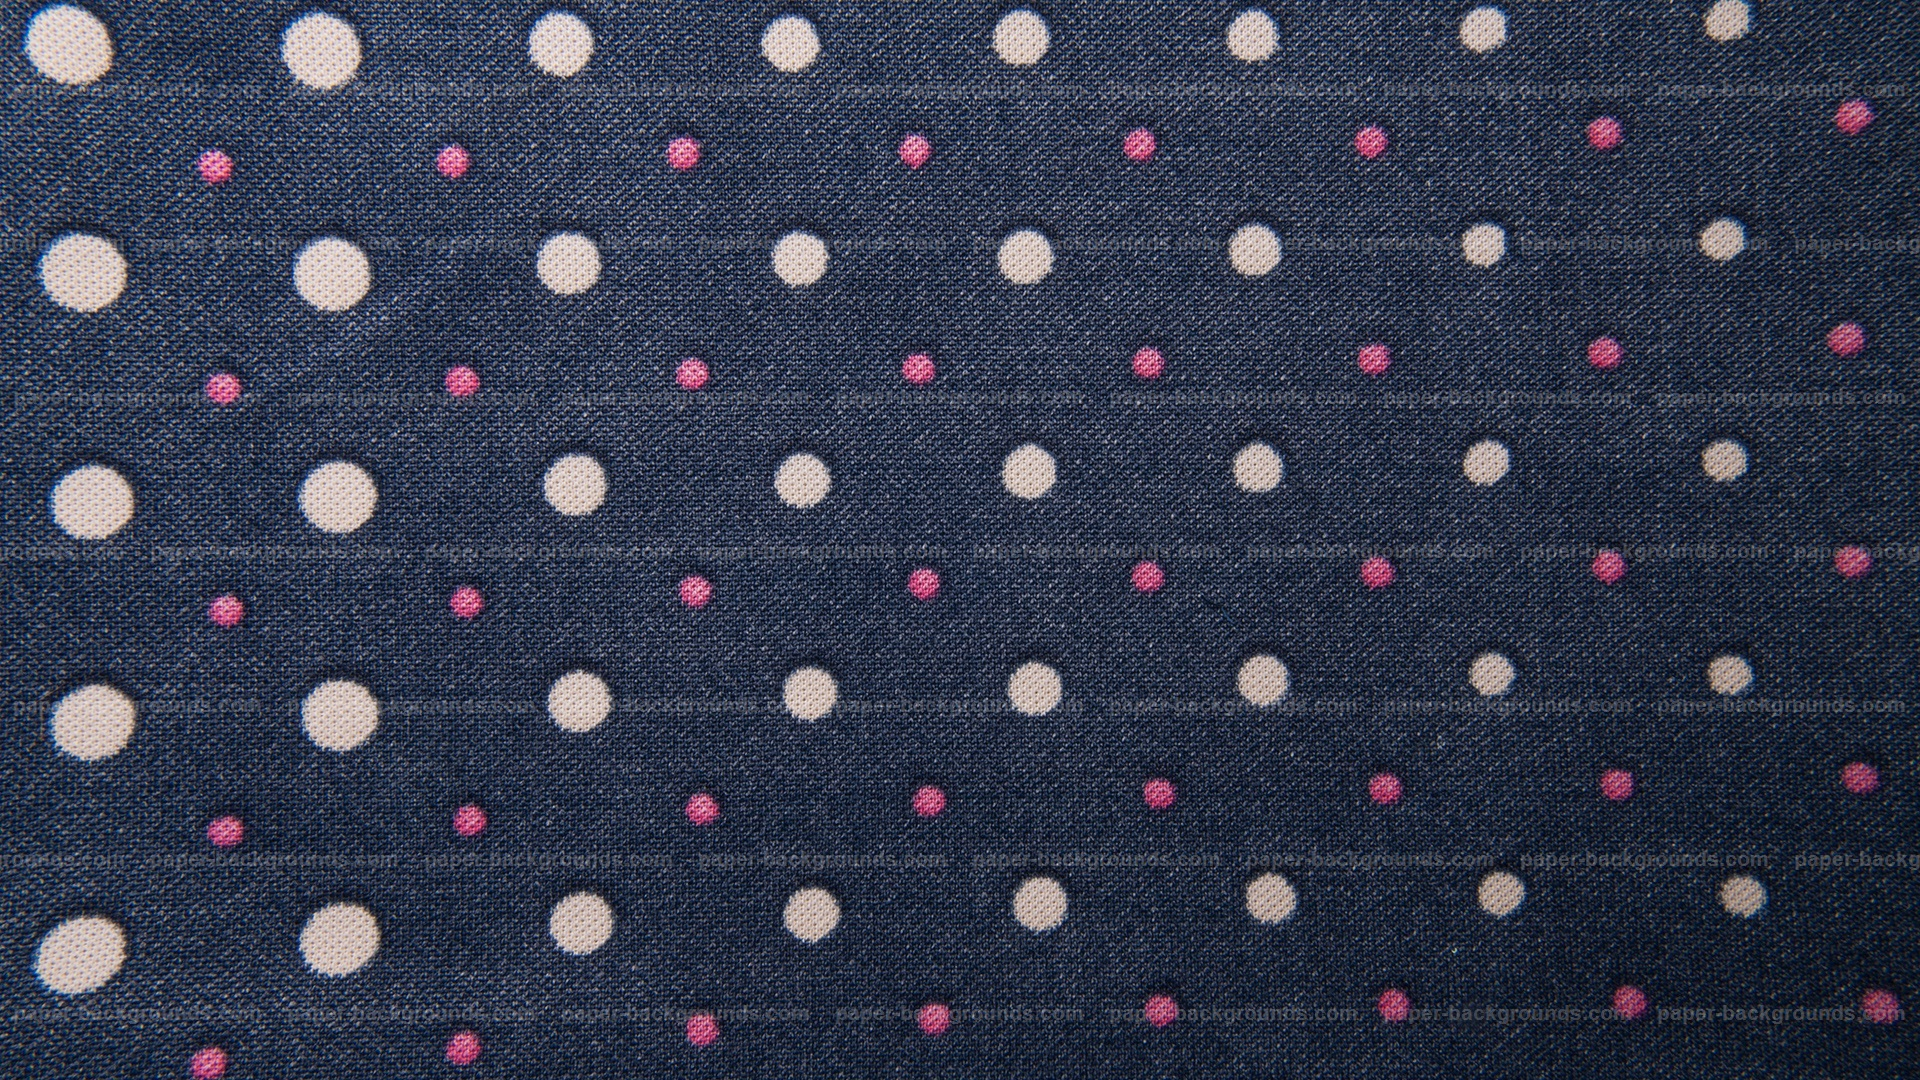 Dark Blue Fabric Texture With White Red Spots HD